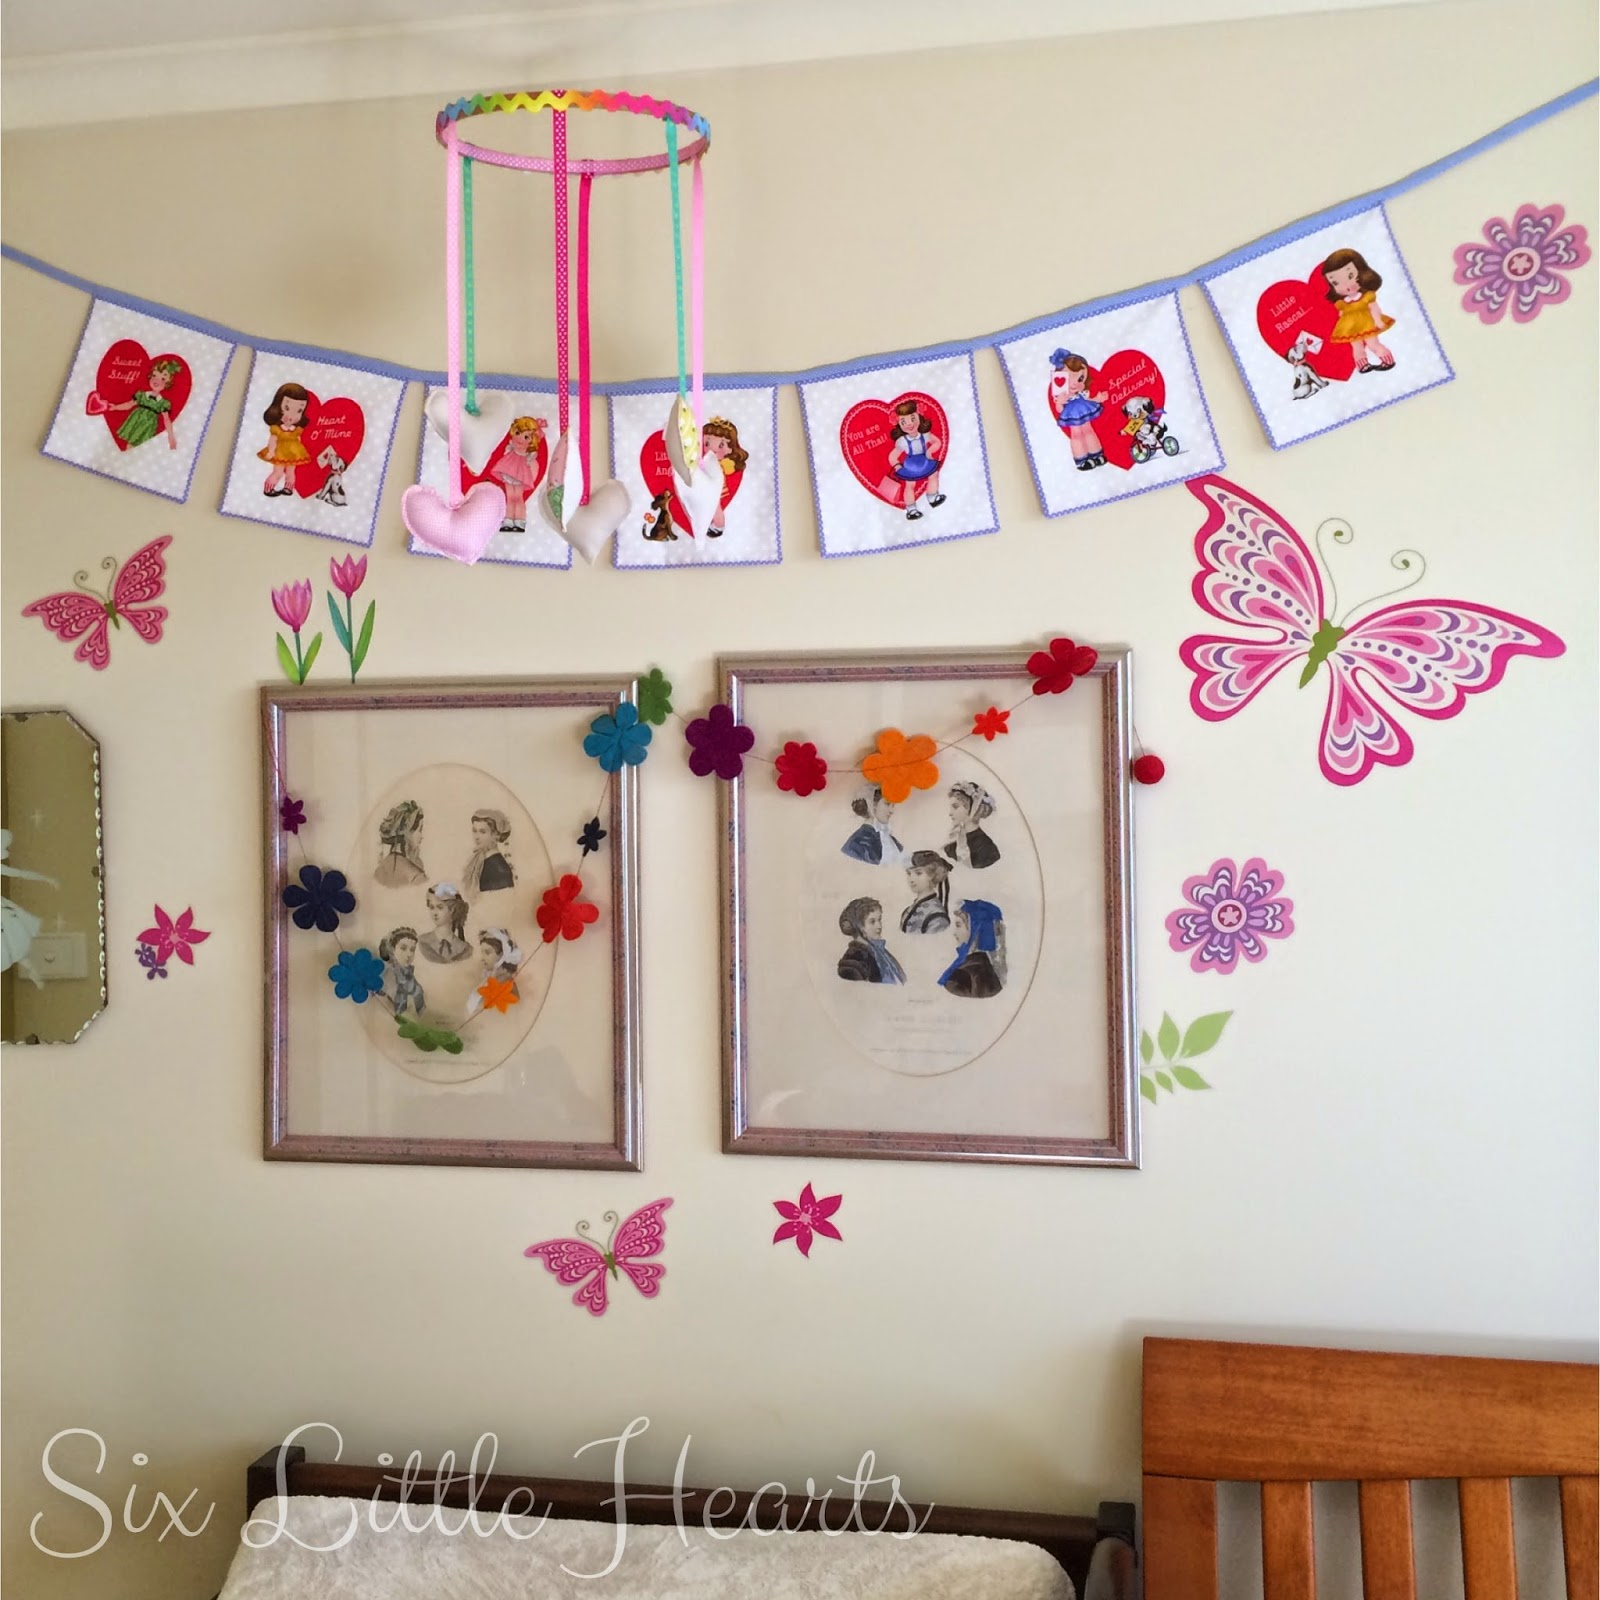 A Cutie Pie Wall Stickers Review   An Inexpensive Way To Decorate Your  Childu0027s Room Plus Giveaway